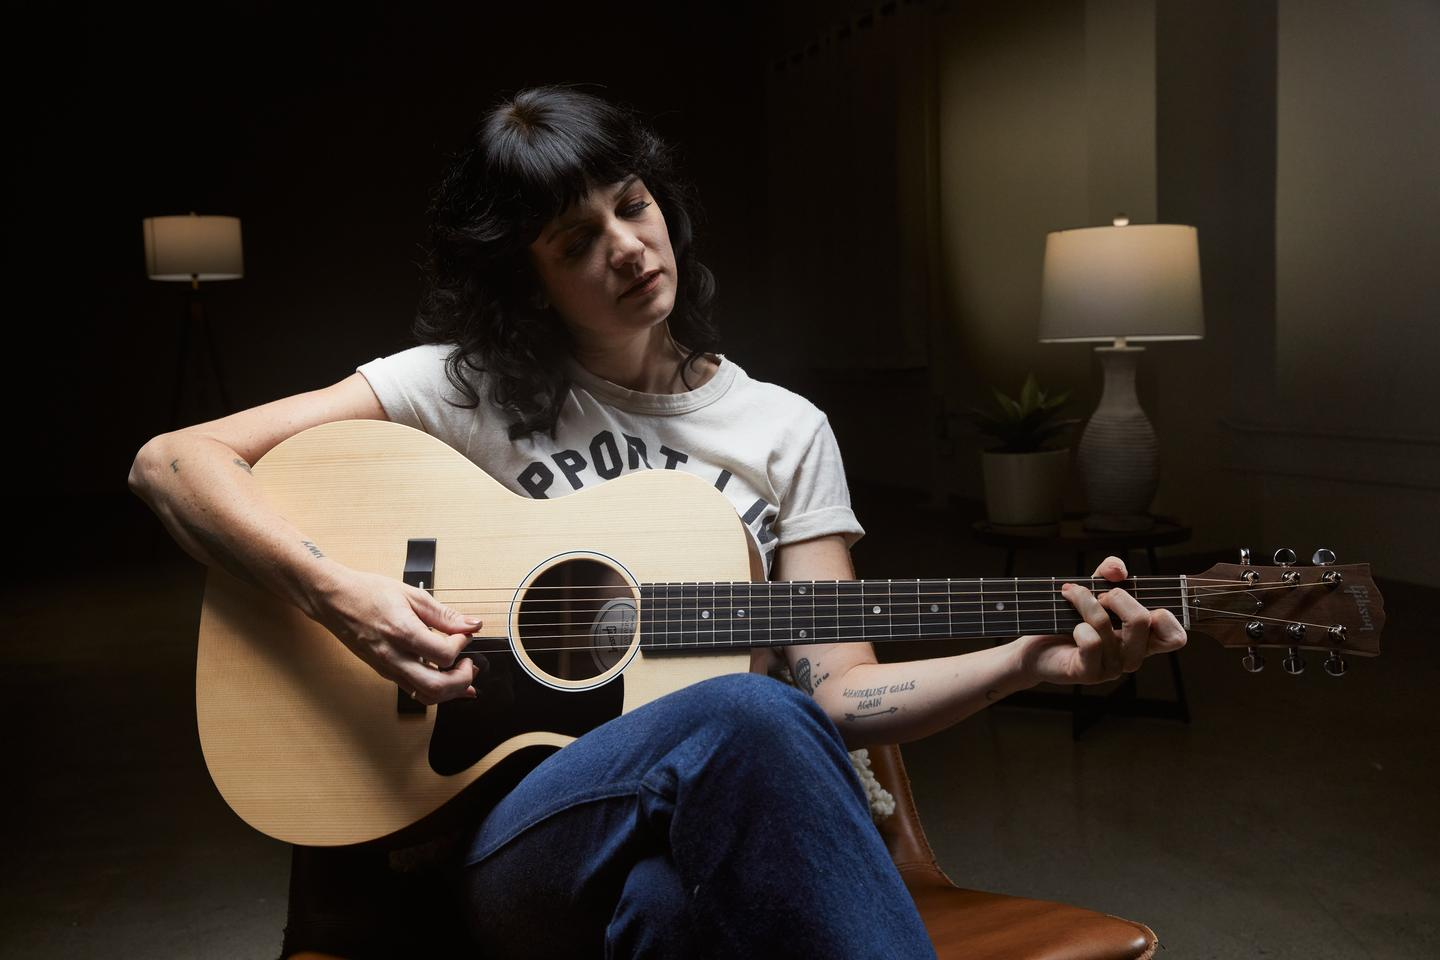 Modern country picker Nikki Lane gets to grips with the G-00 parlor guitar